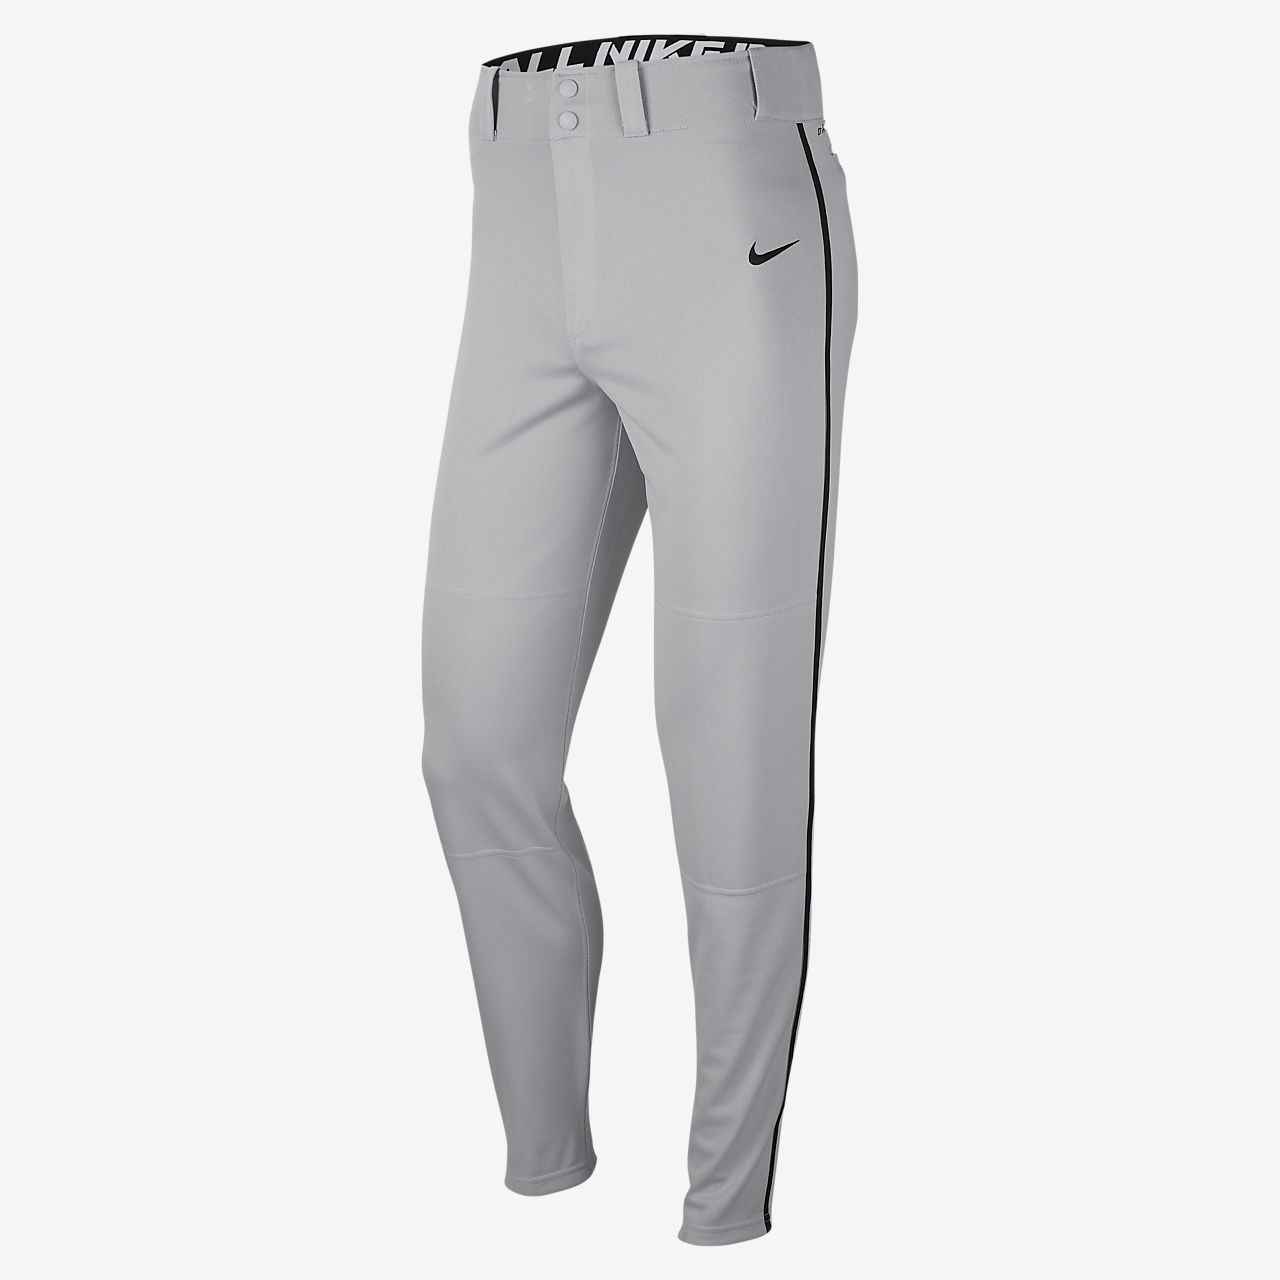 Nike Swoosh Men's Baseball Pants